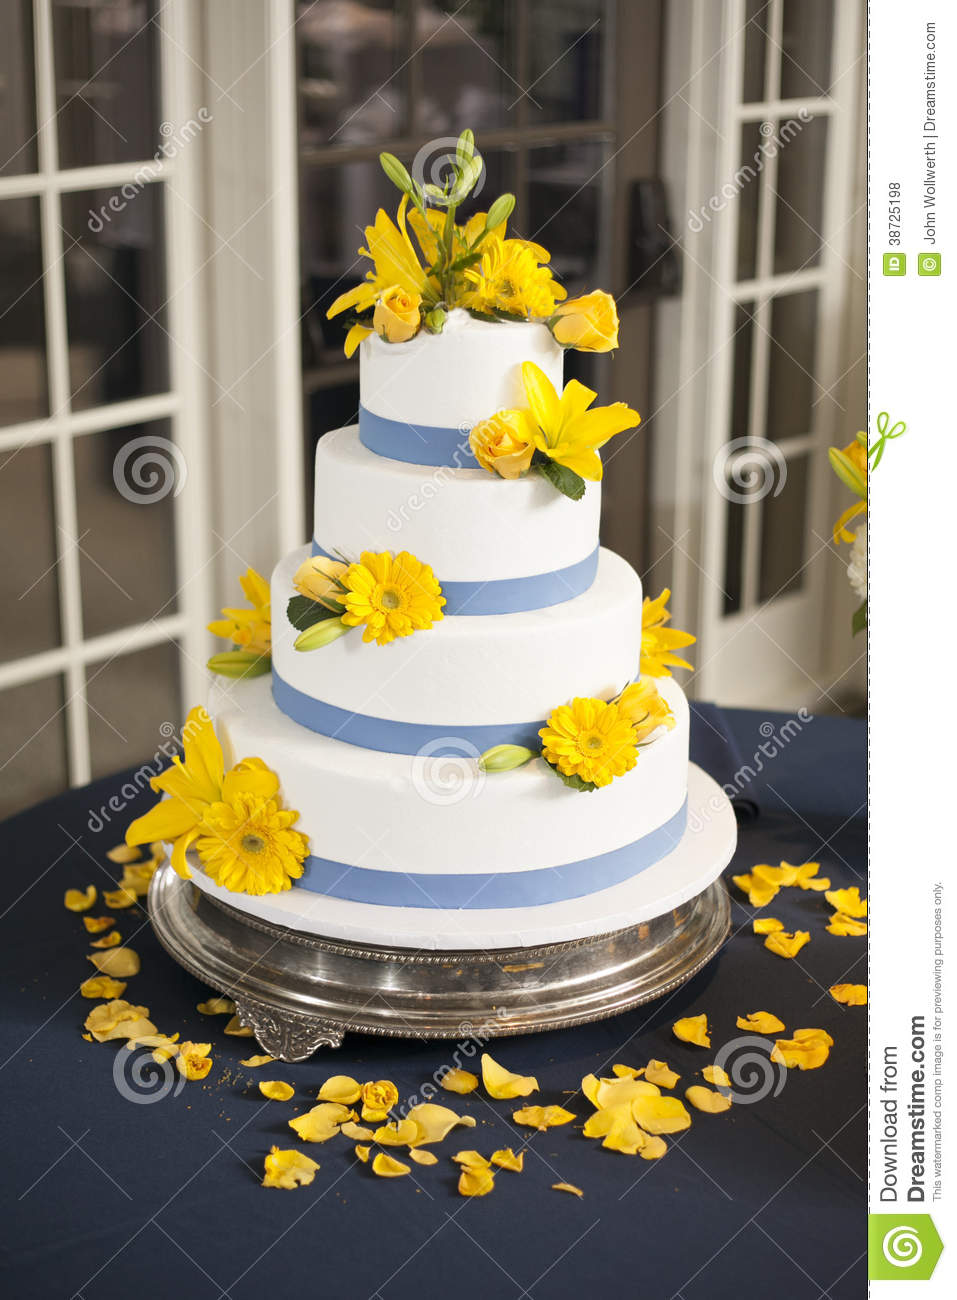 Wedding Cake With Yellow Flowers Stock Photo Image Of